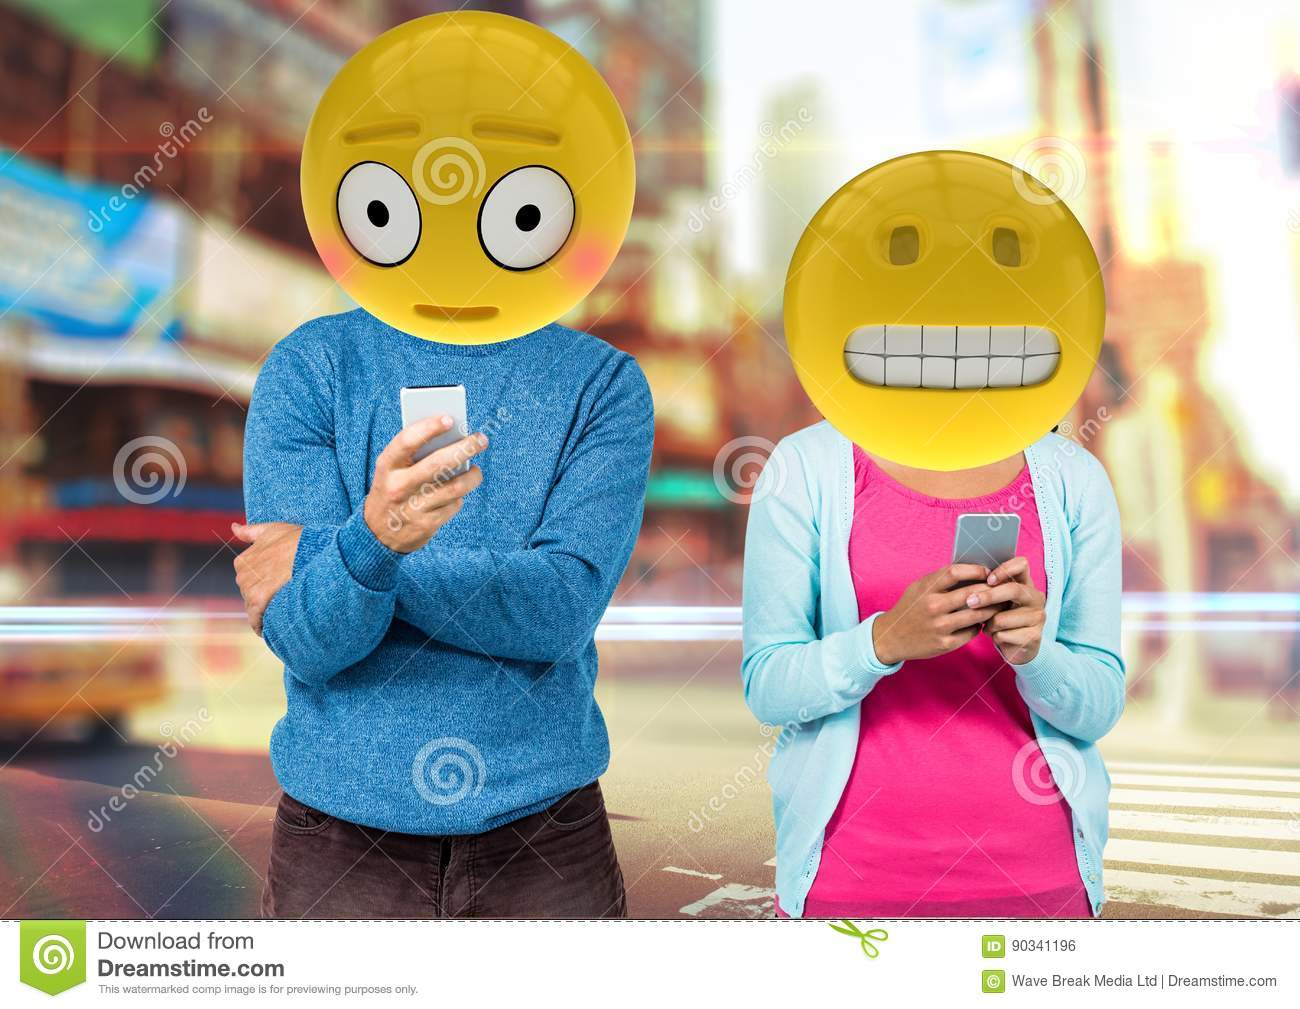 Wrong Sentences In WhatsApp  Emoji Face  Stock Illustration